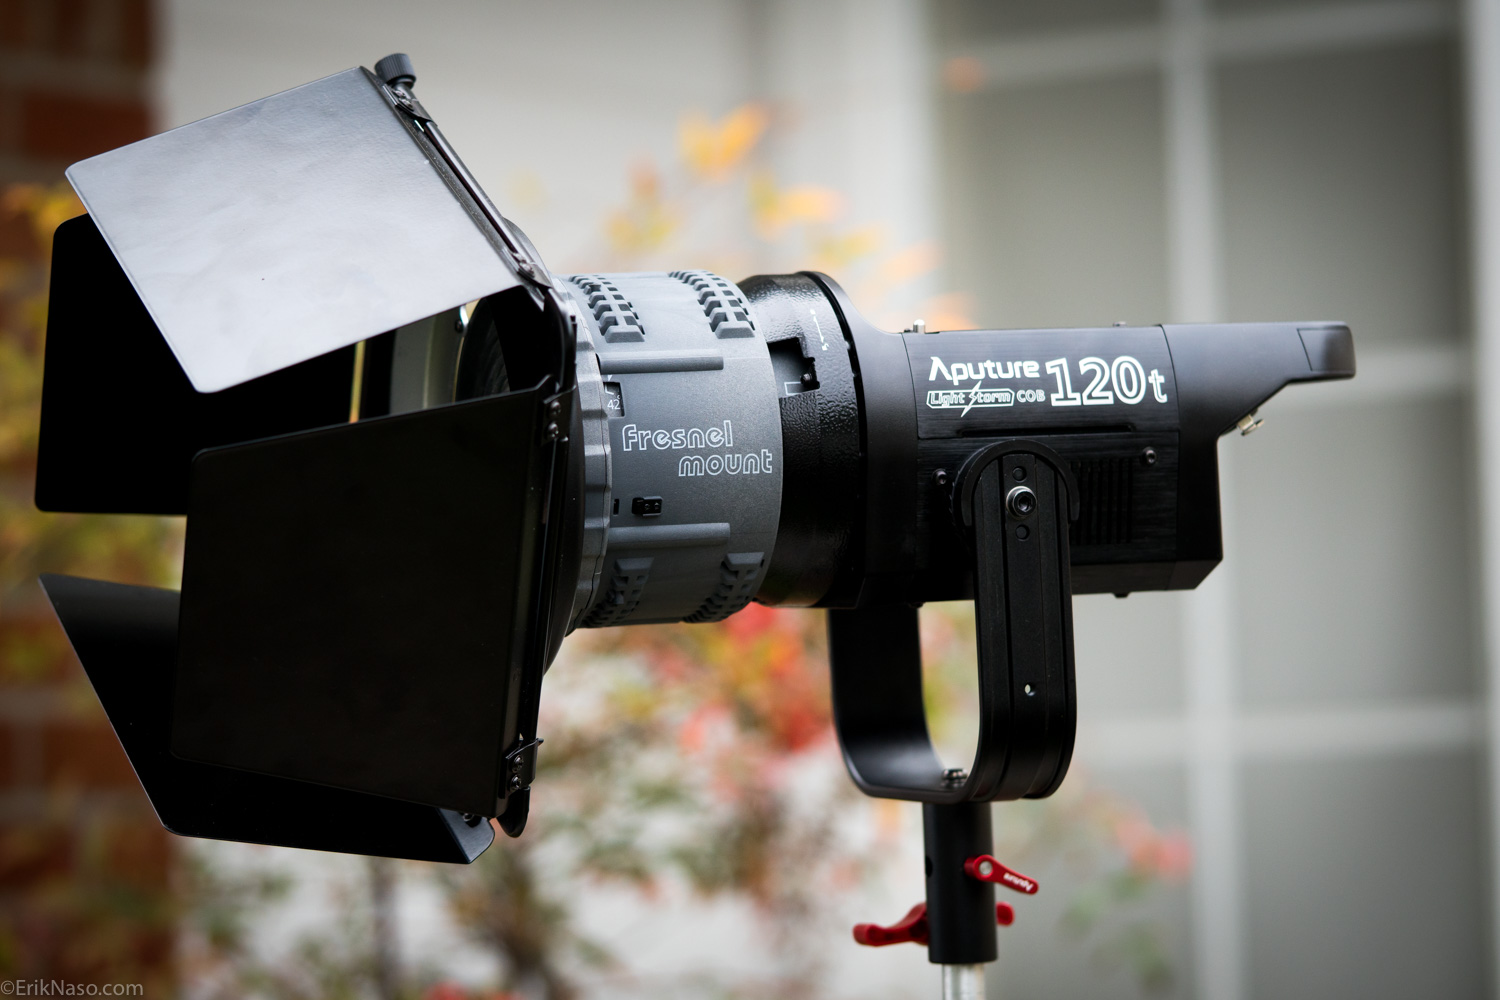 aputure-fresnel-with-bard-doors